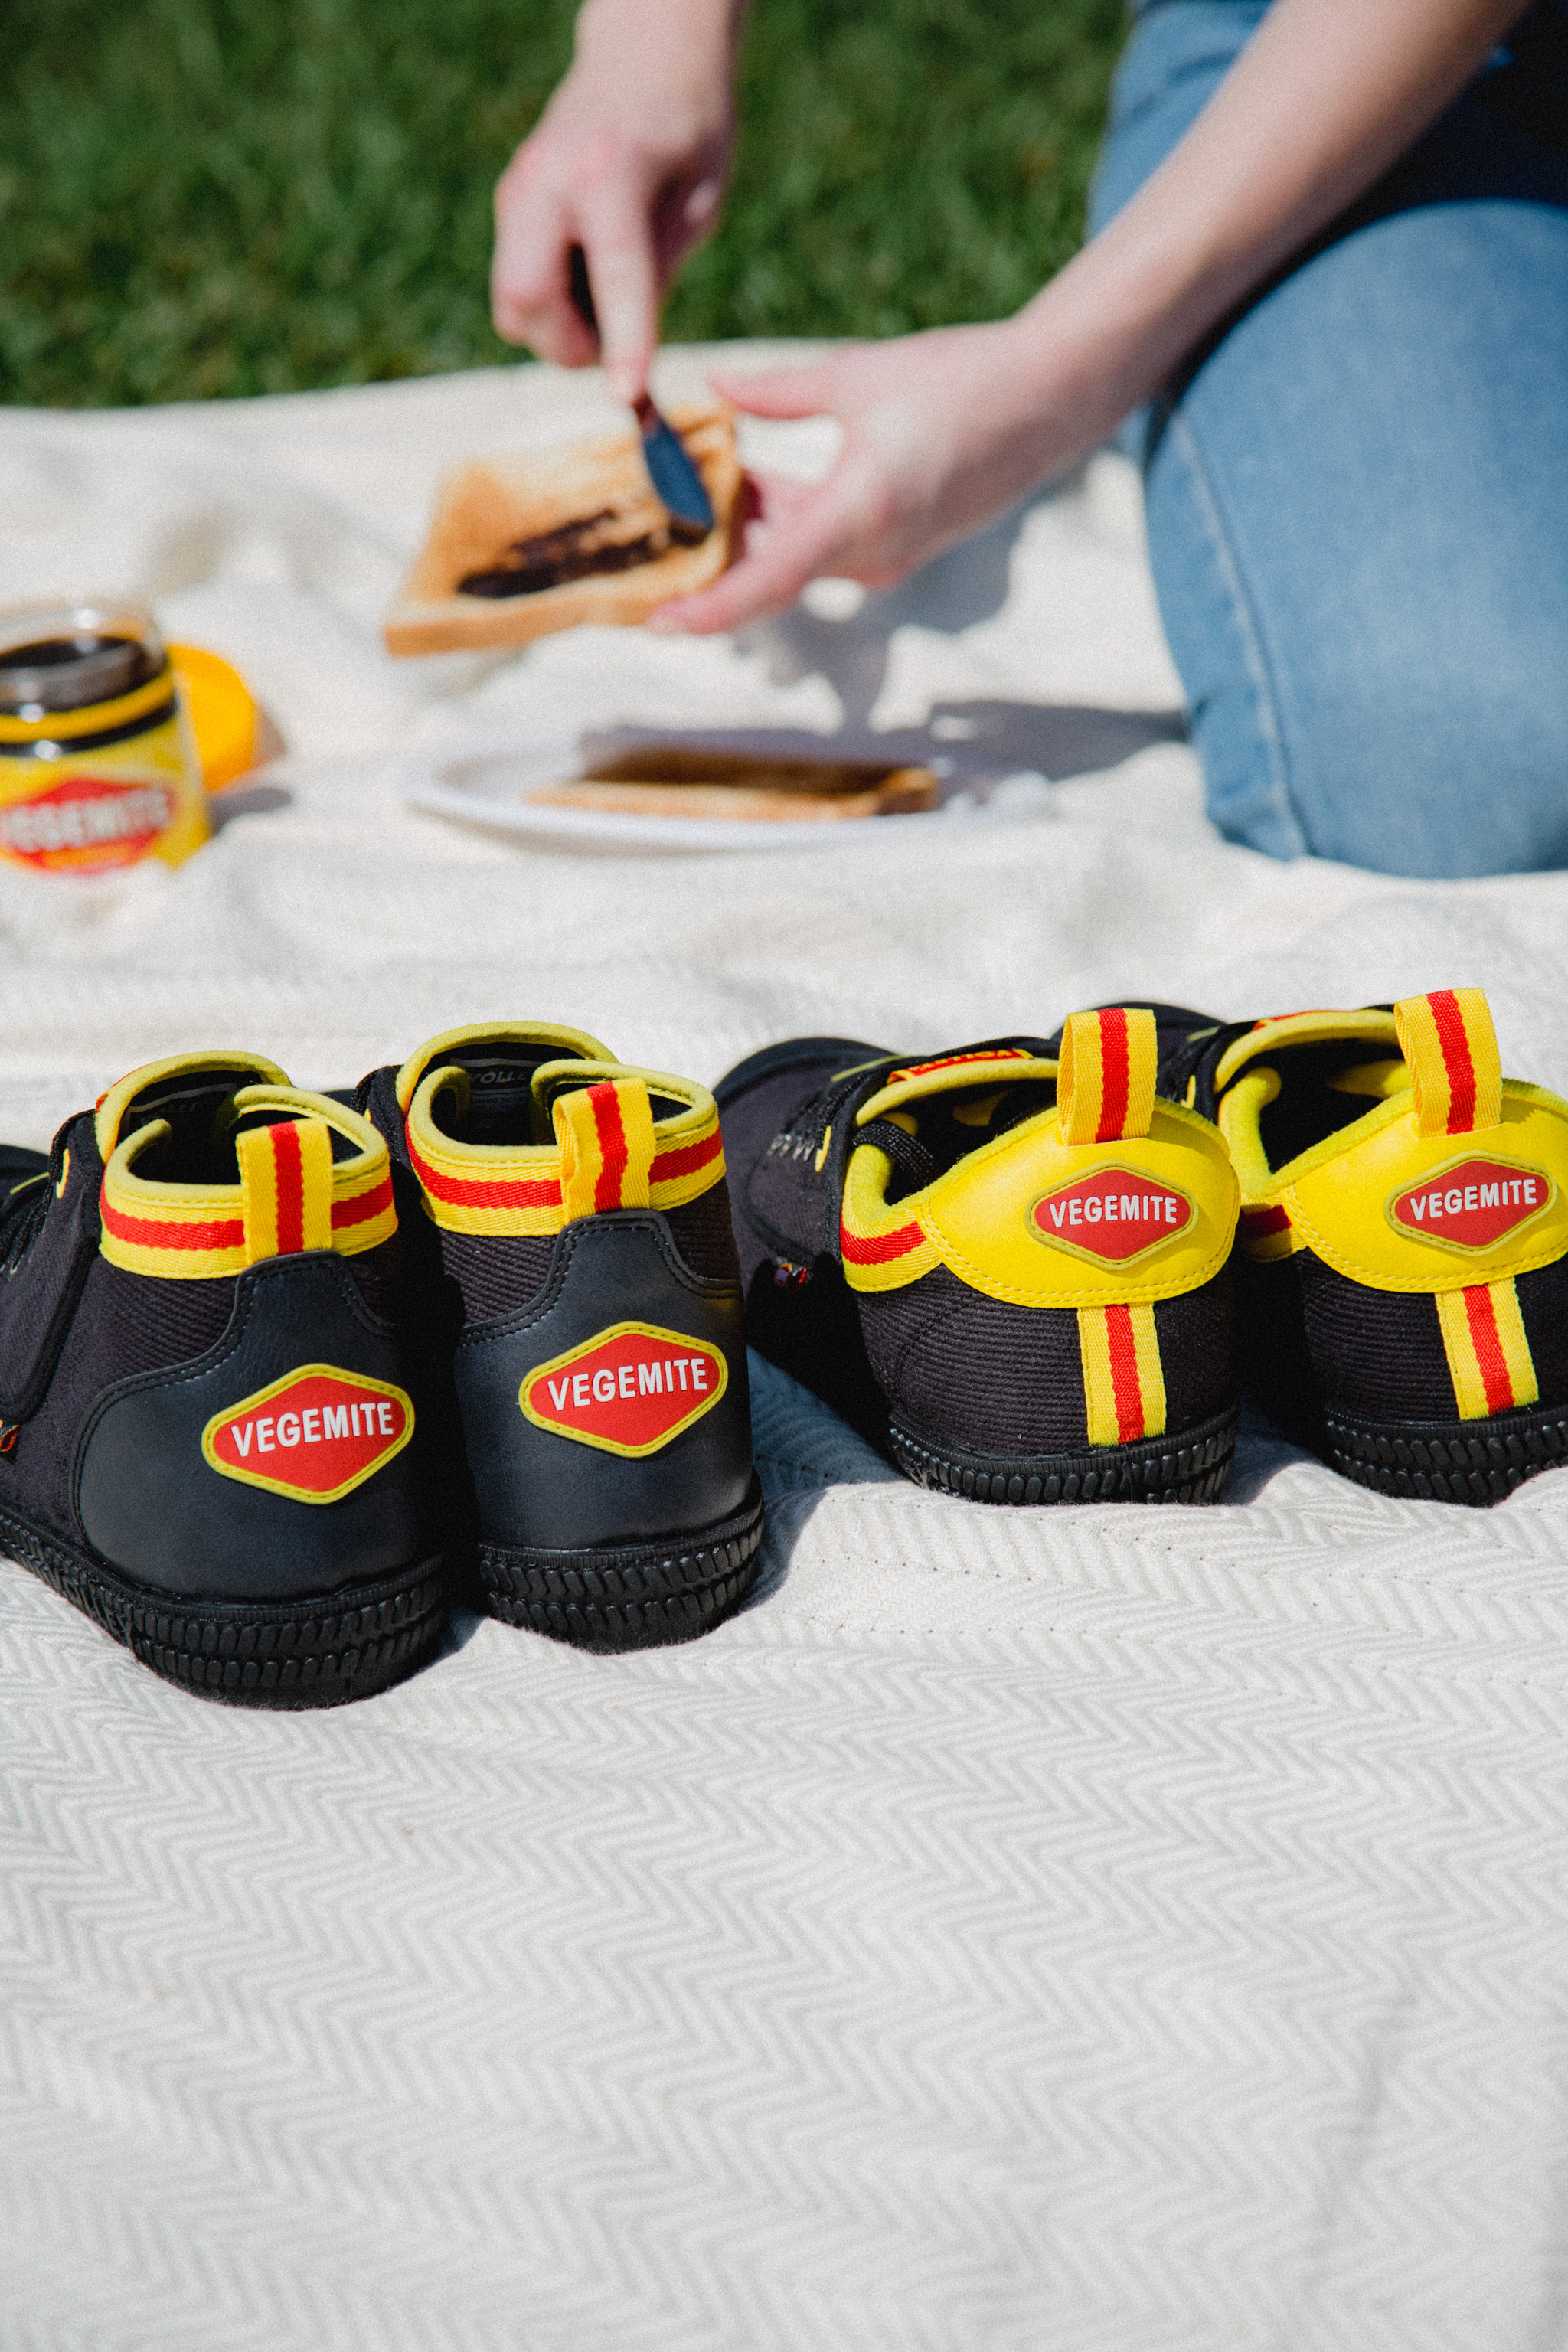 Introducing The Limited-Edition VEGEMITE x Volley Shoe